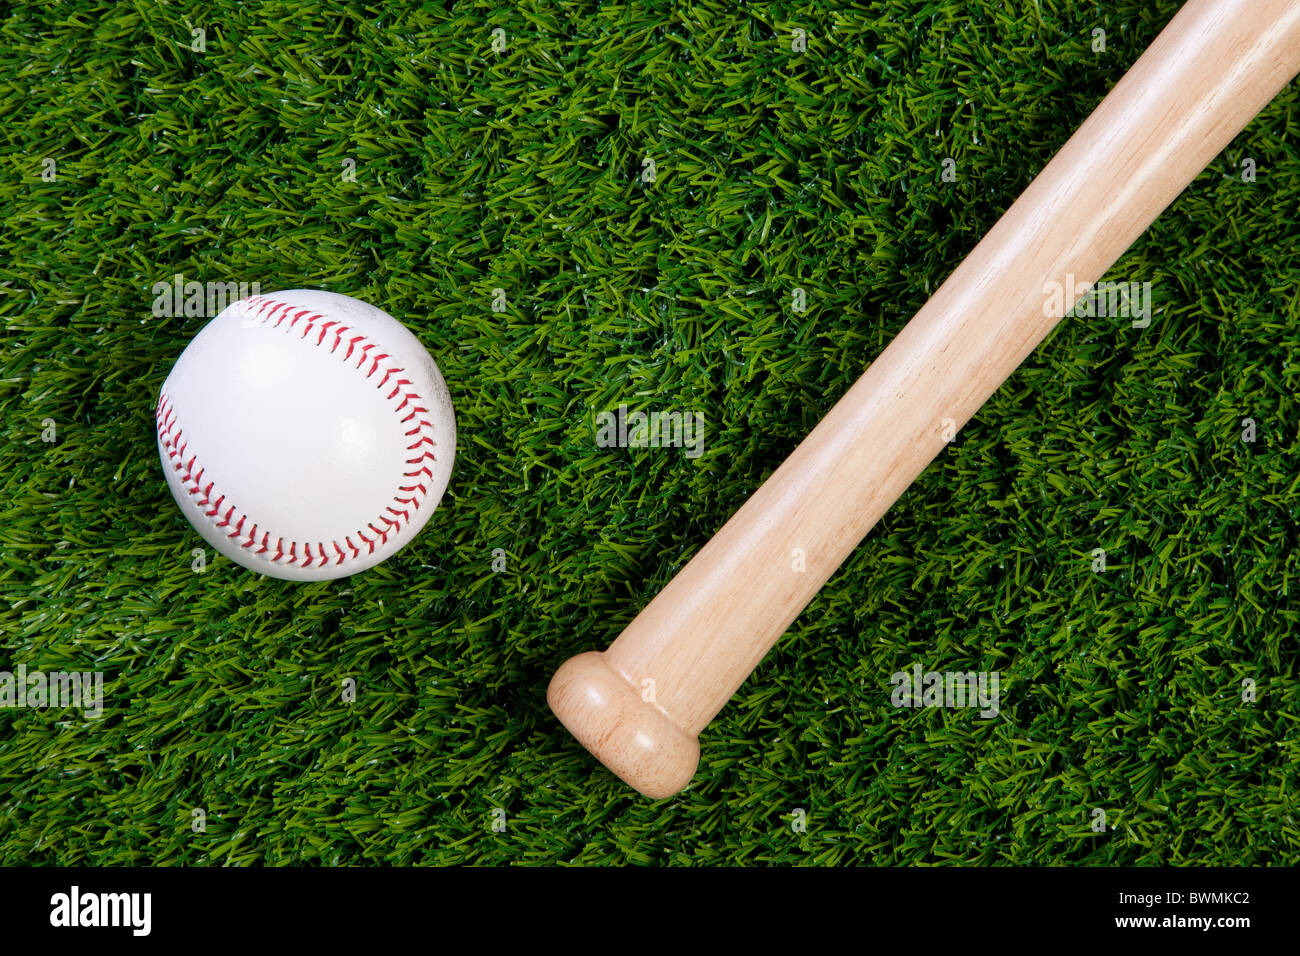 Photo of a baseball and wodden bat on grass - Stock Image